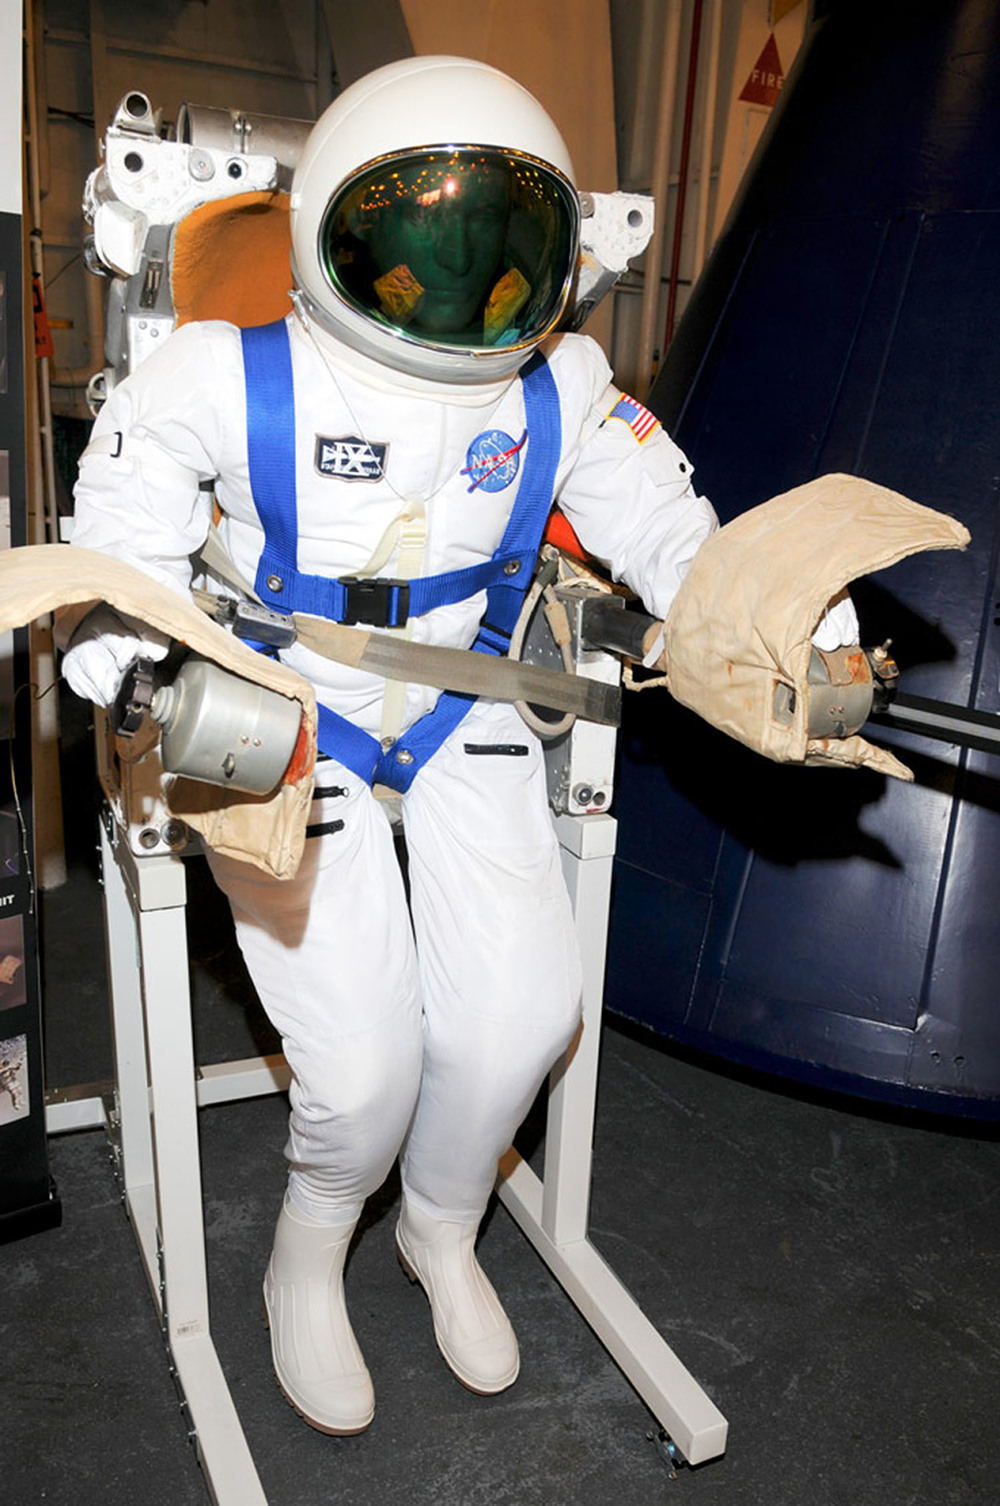 Spacesuit from Splashdown in 2009 | Photo by Susan Wood